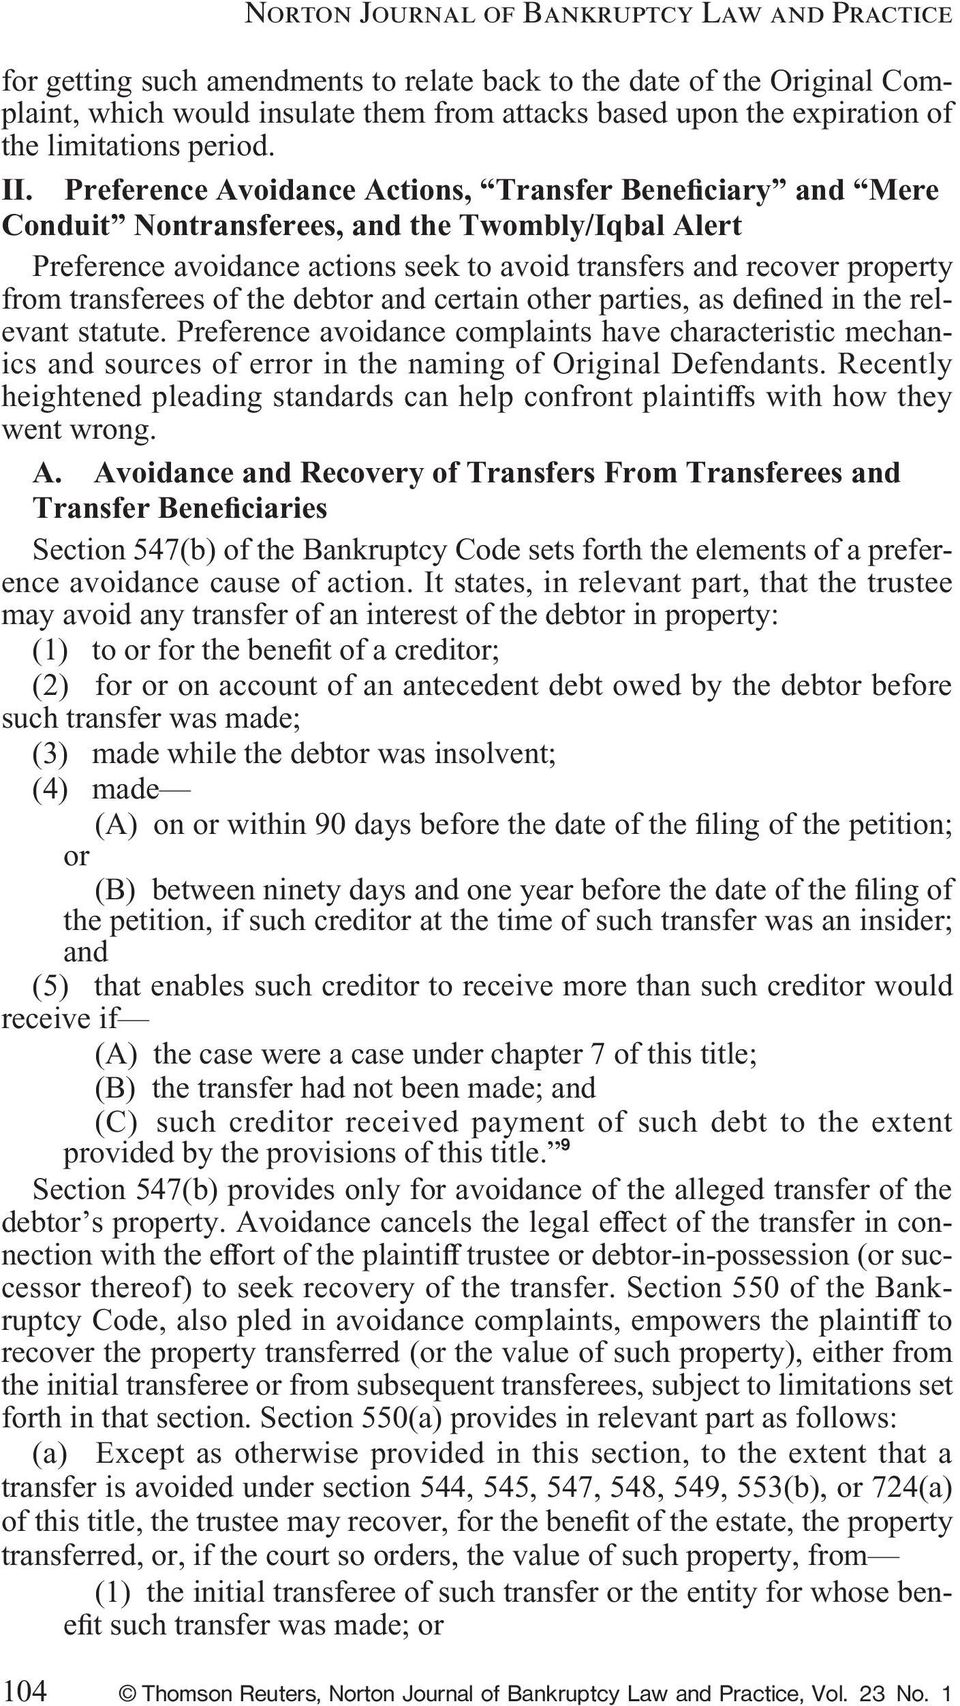 Preference Avoidance Actions, Transfer Bene ciary and Mere Conduit Nontransferees, and the Twombly/Iqbal Alert Preference avoidance actions seek to avoid transfers and recover property from